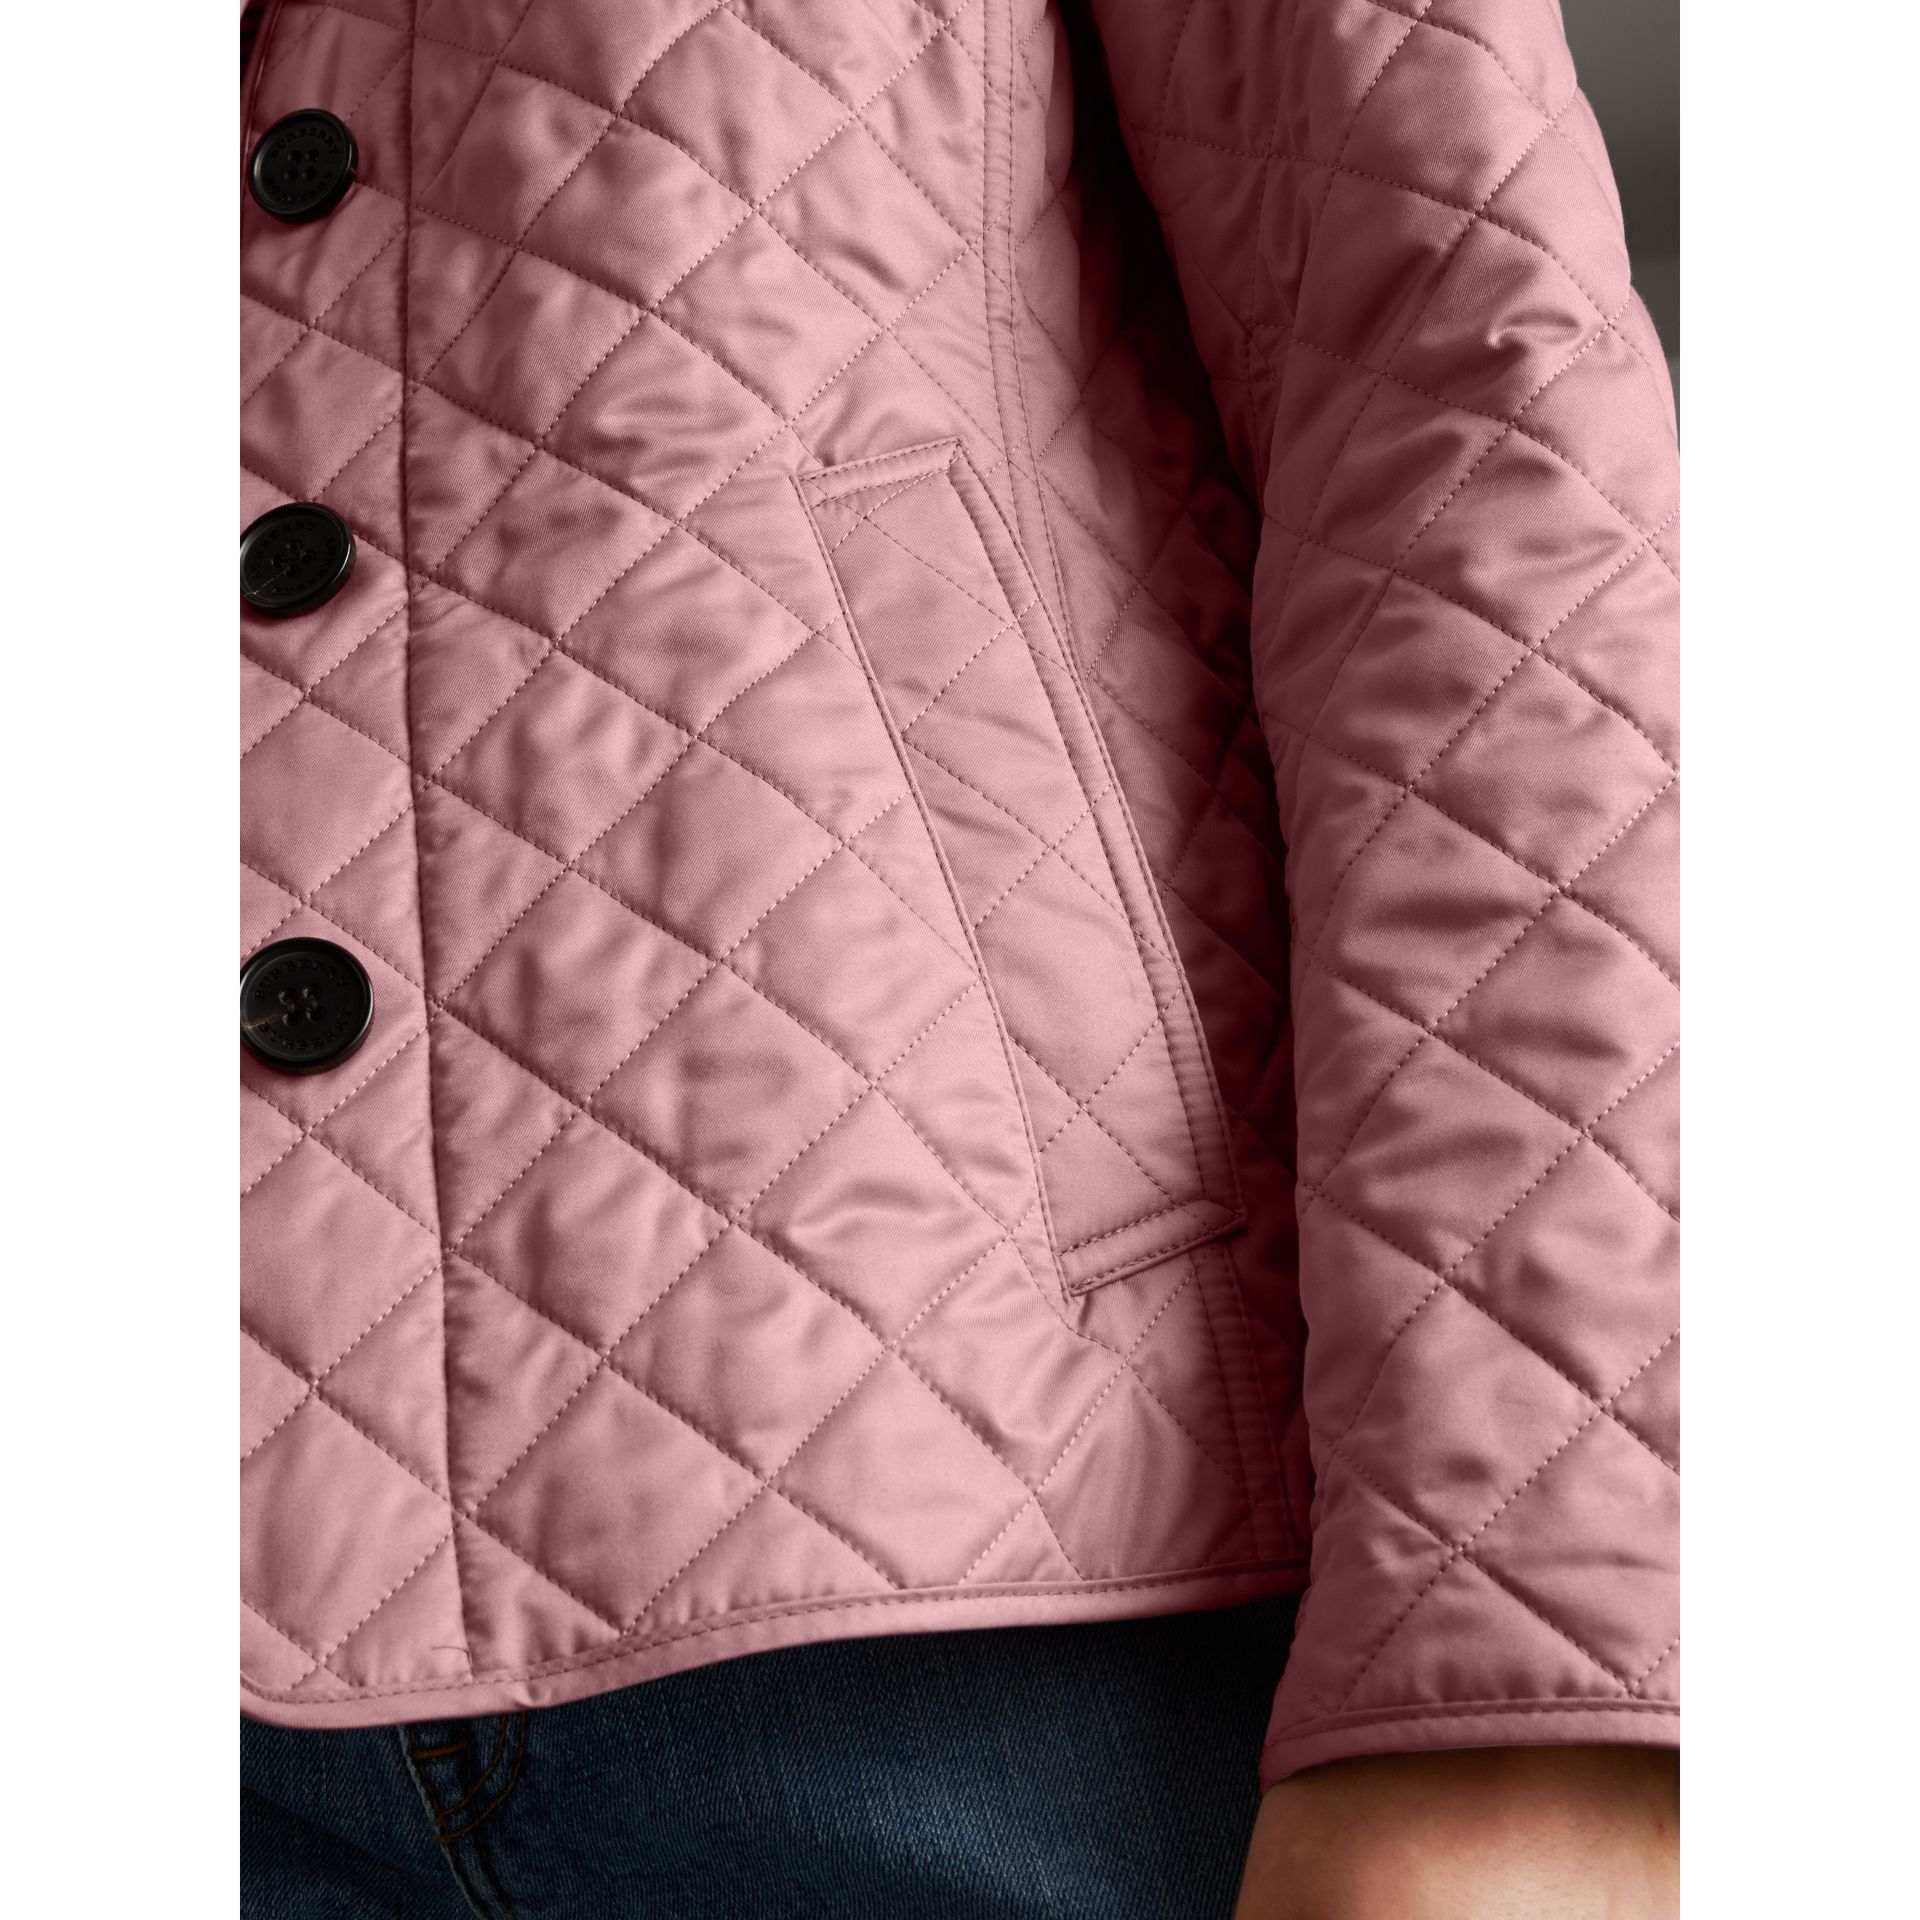 Diamond Quilted Jacket in Vintage Rose - Women | Burberry Canada - gallery image 5